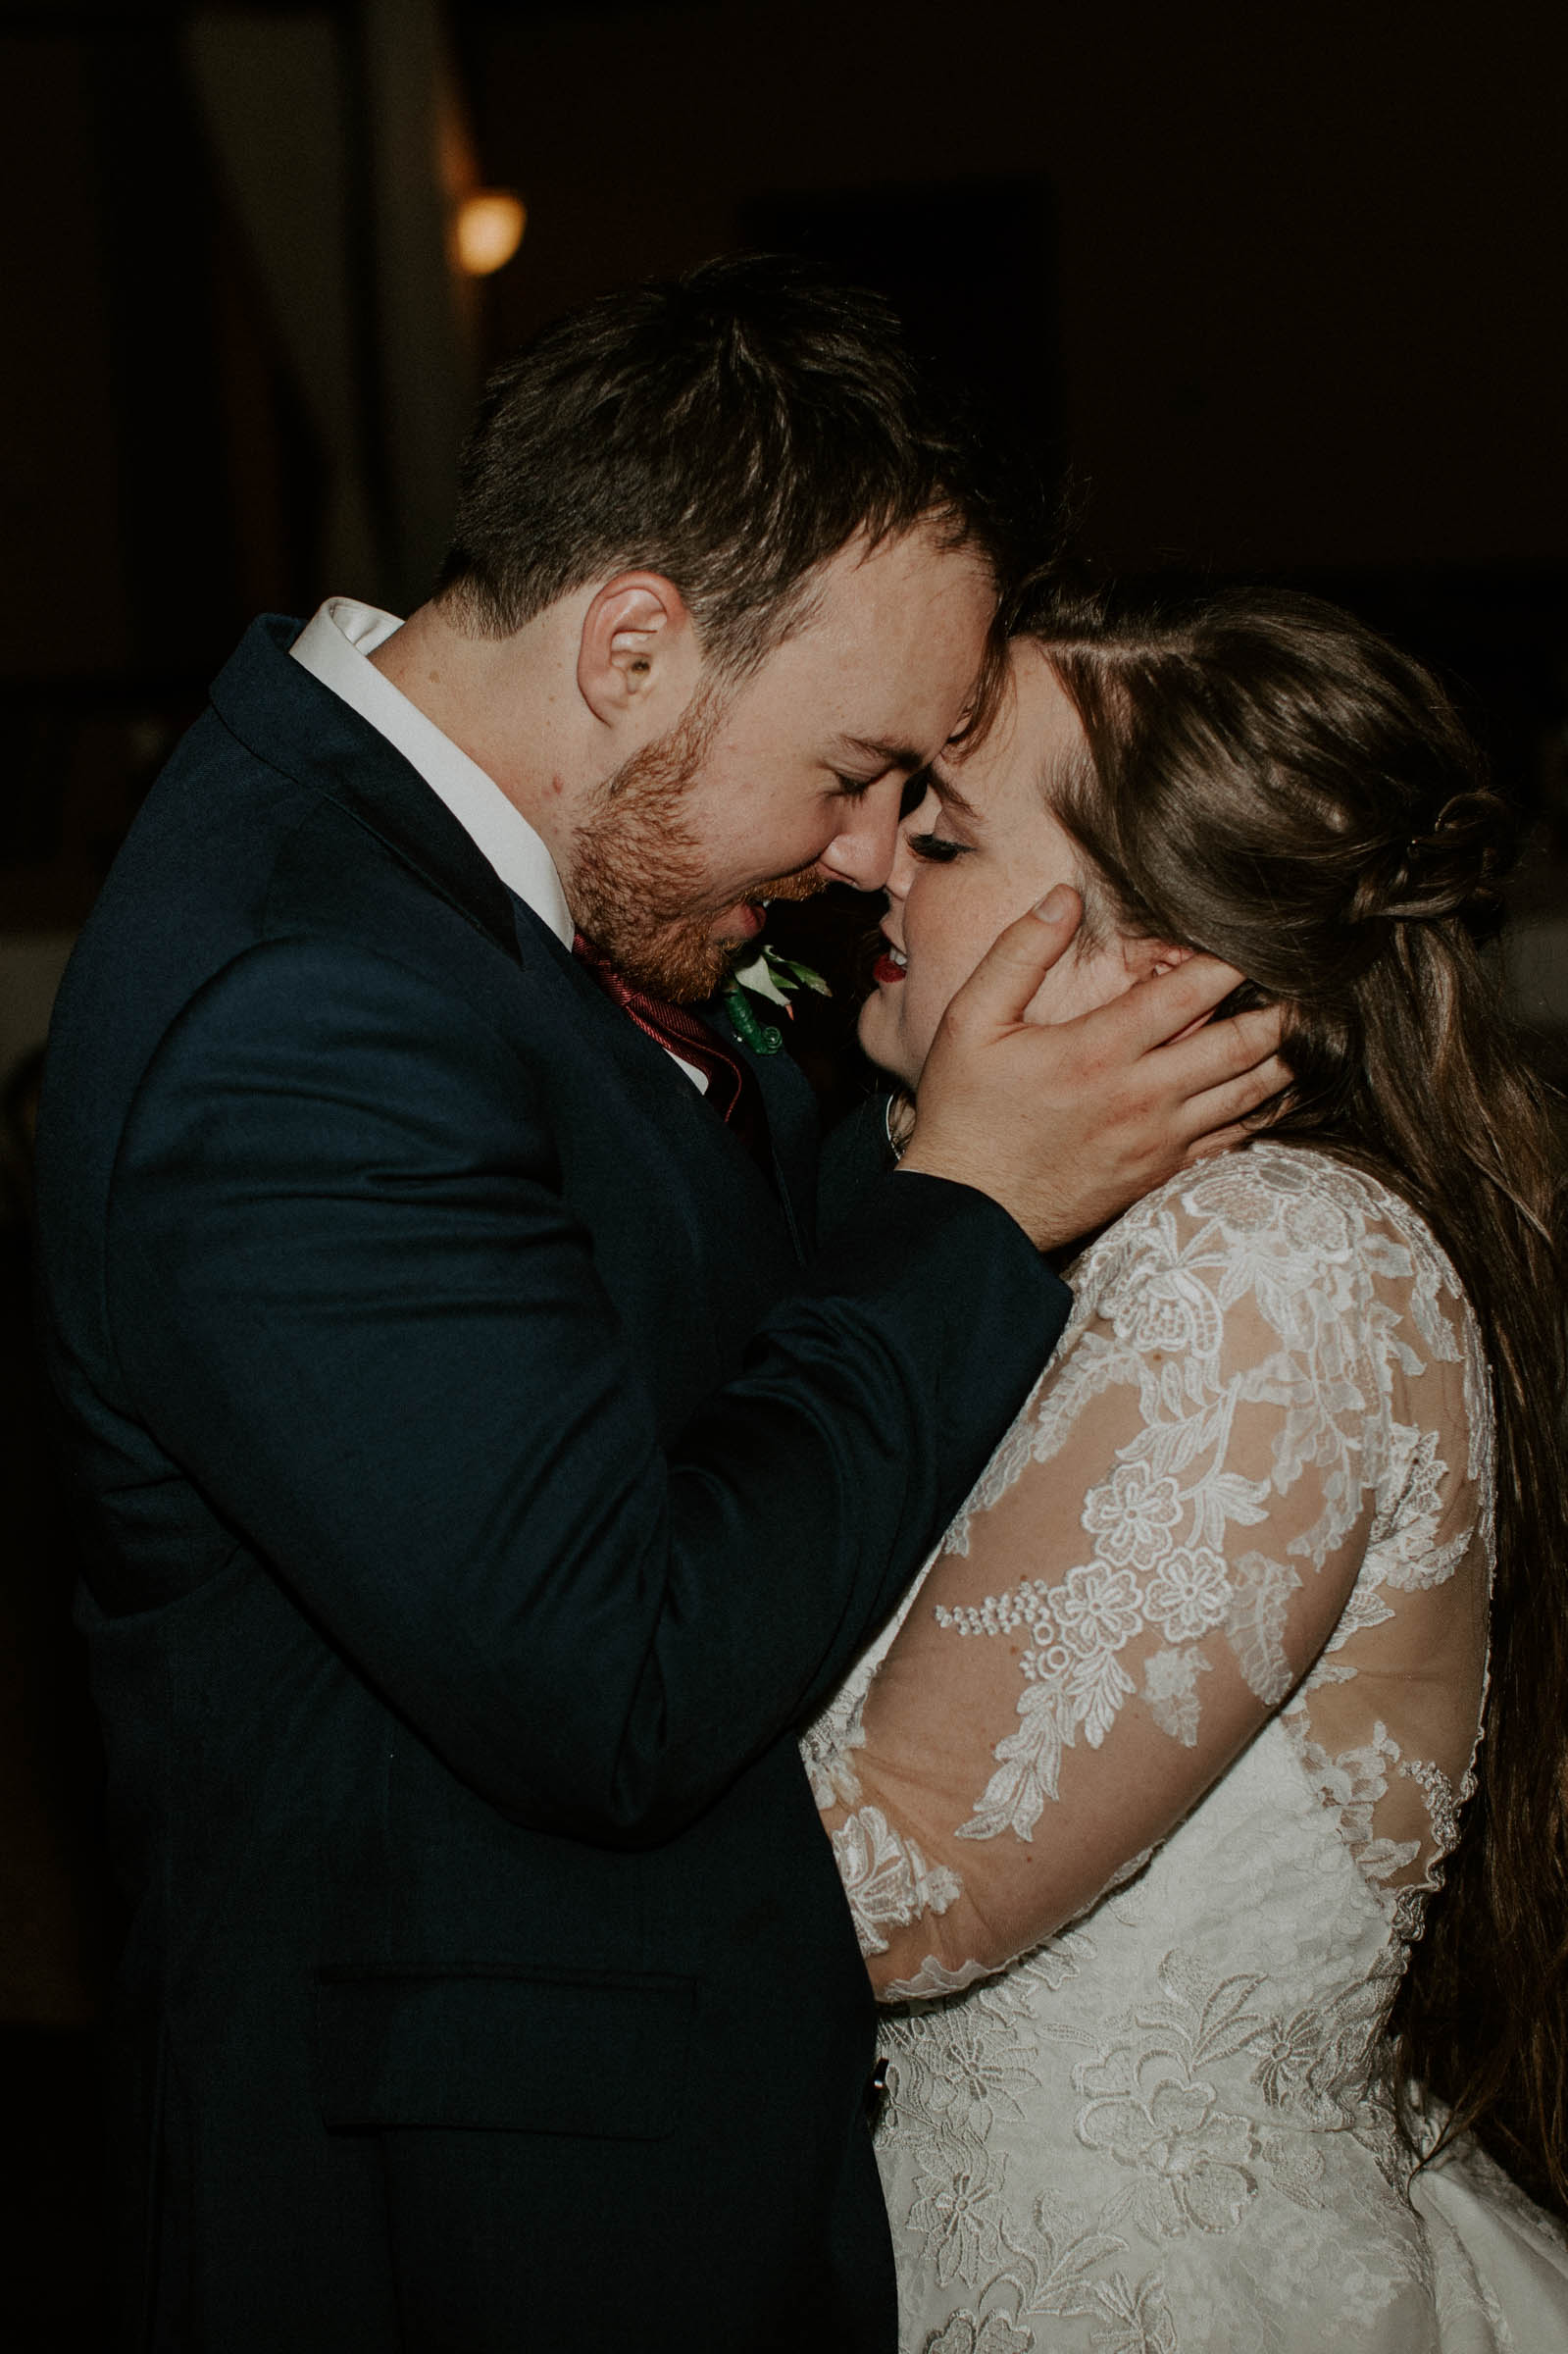 bride and groom sharing their last private dance on their wedding day